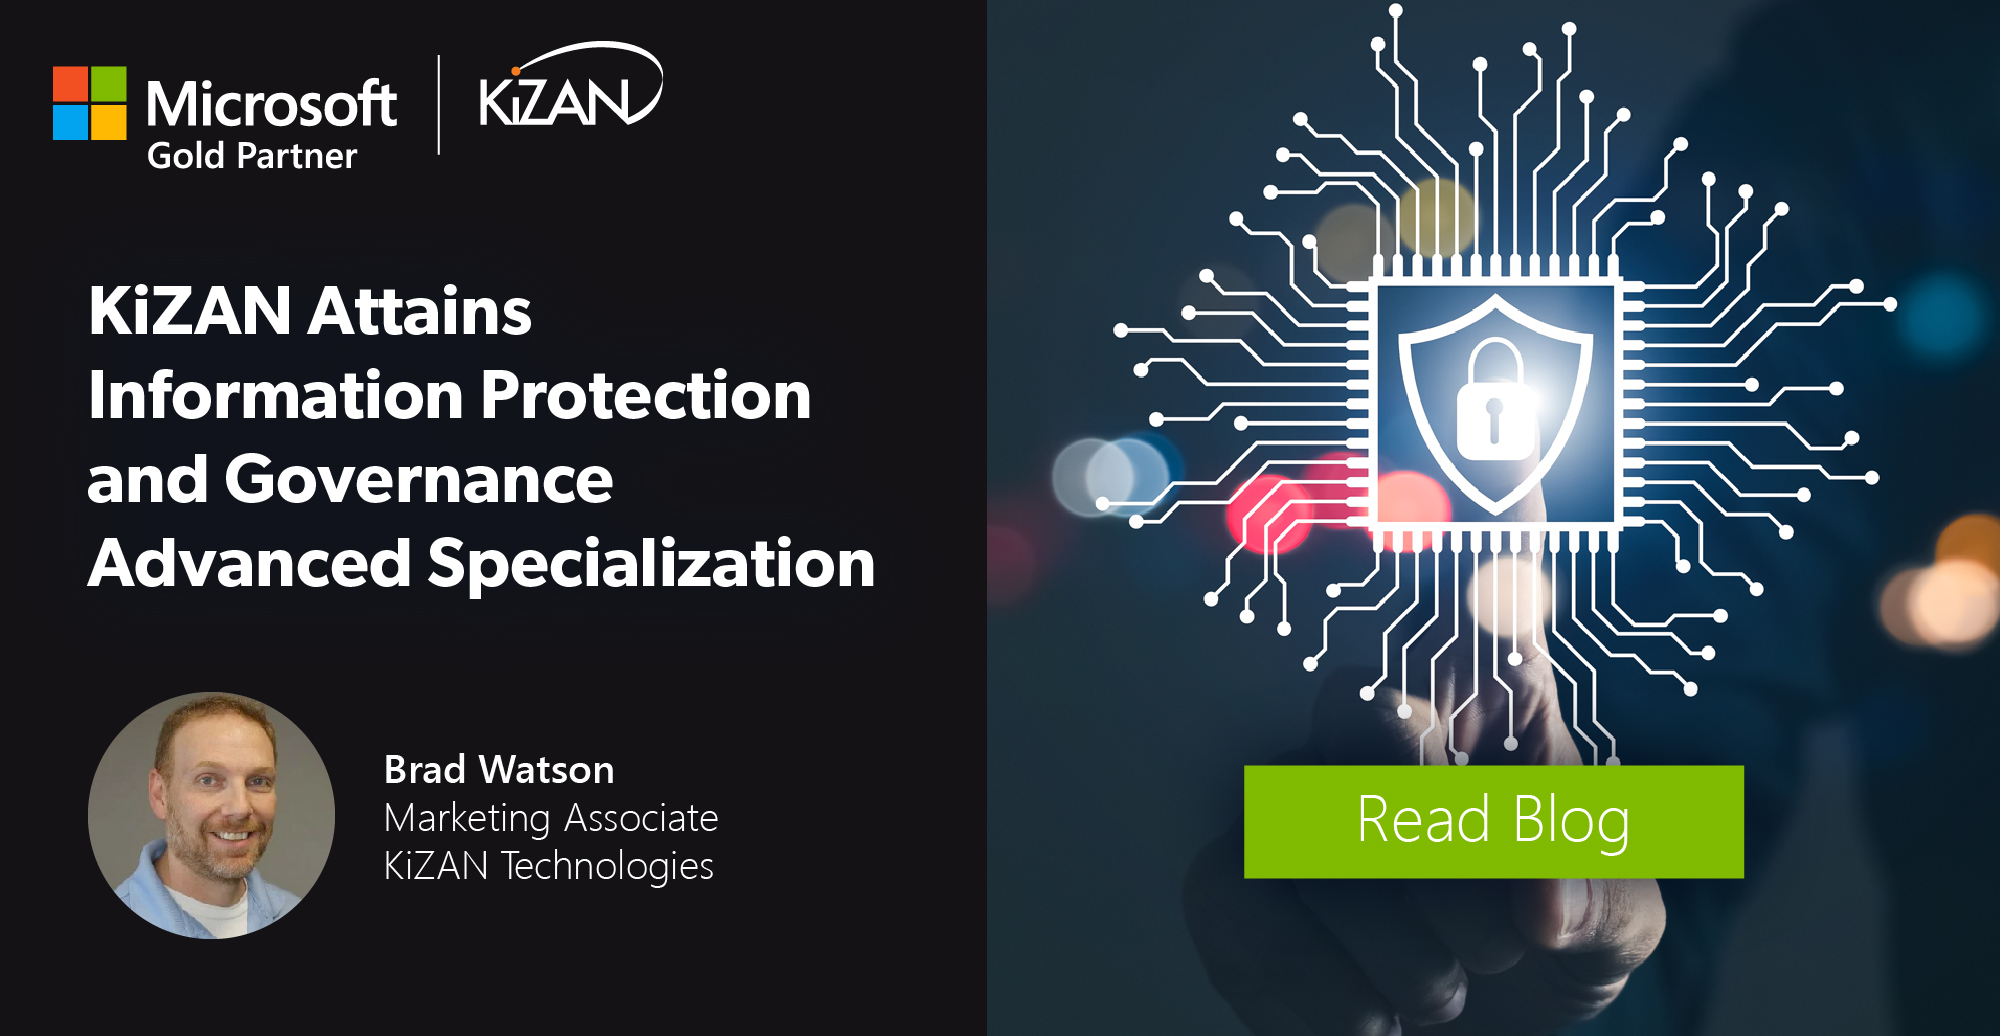 KiZAN Attains Information Protection and Governance Advanced Specialization